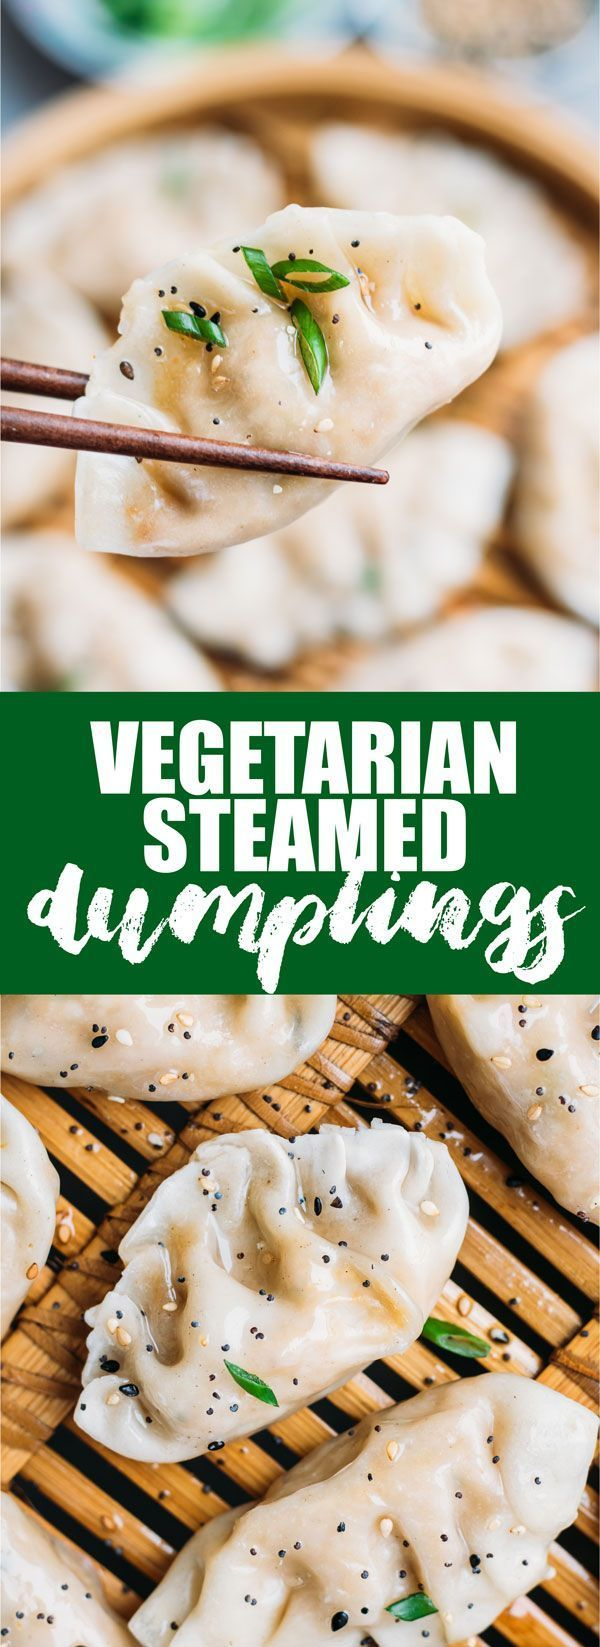 steamed dumplings These vegetarian steamed dumplings are loaded with healthy veggies & tofu, and are so easy to make! You'll never buy dumplings again!These vegetarian steamed dumplings are loaded with healthy veggies & tofu, and are so easy to make! You'll never buy dumplings again!